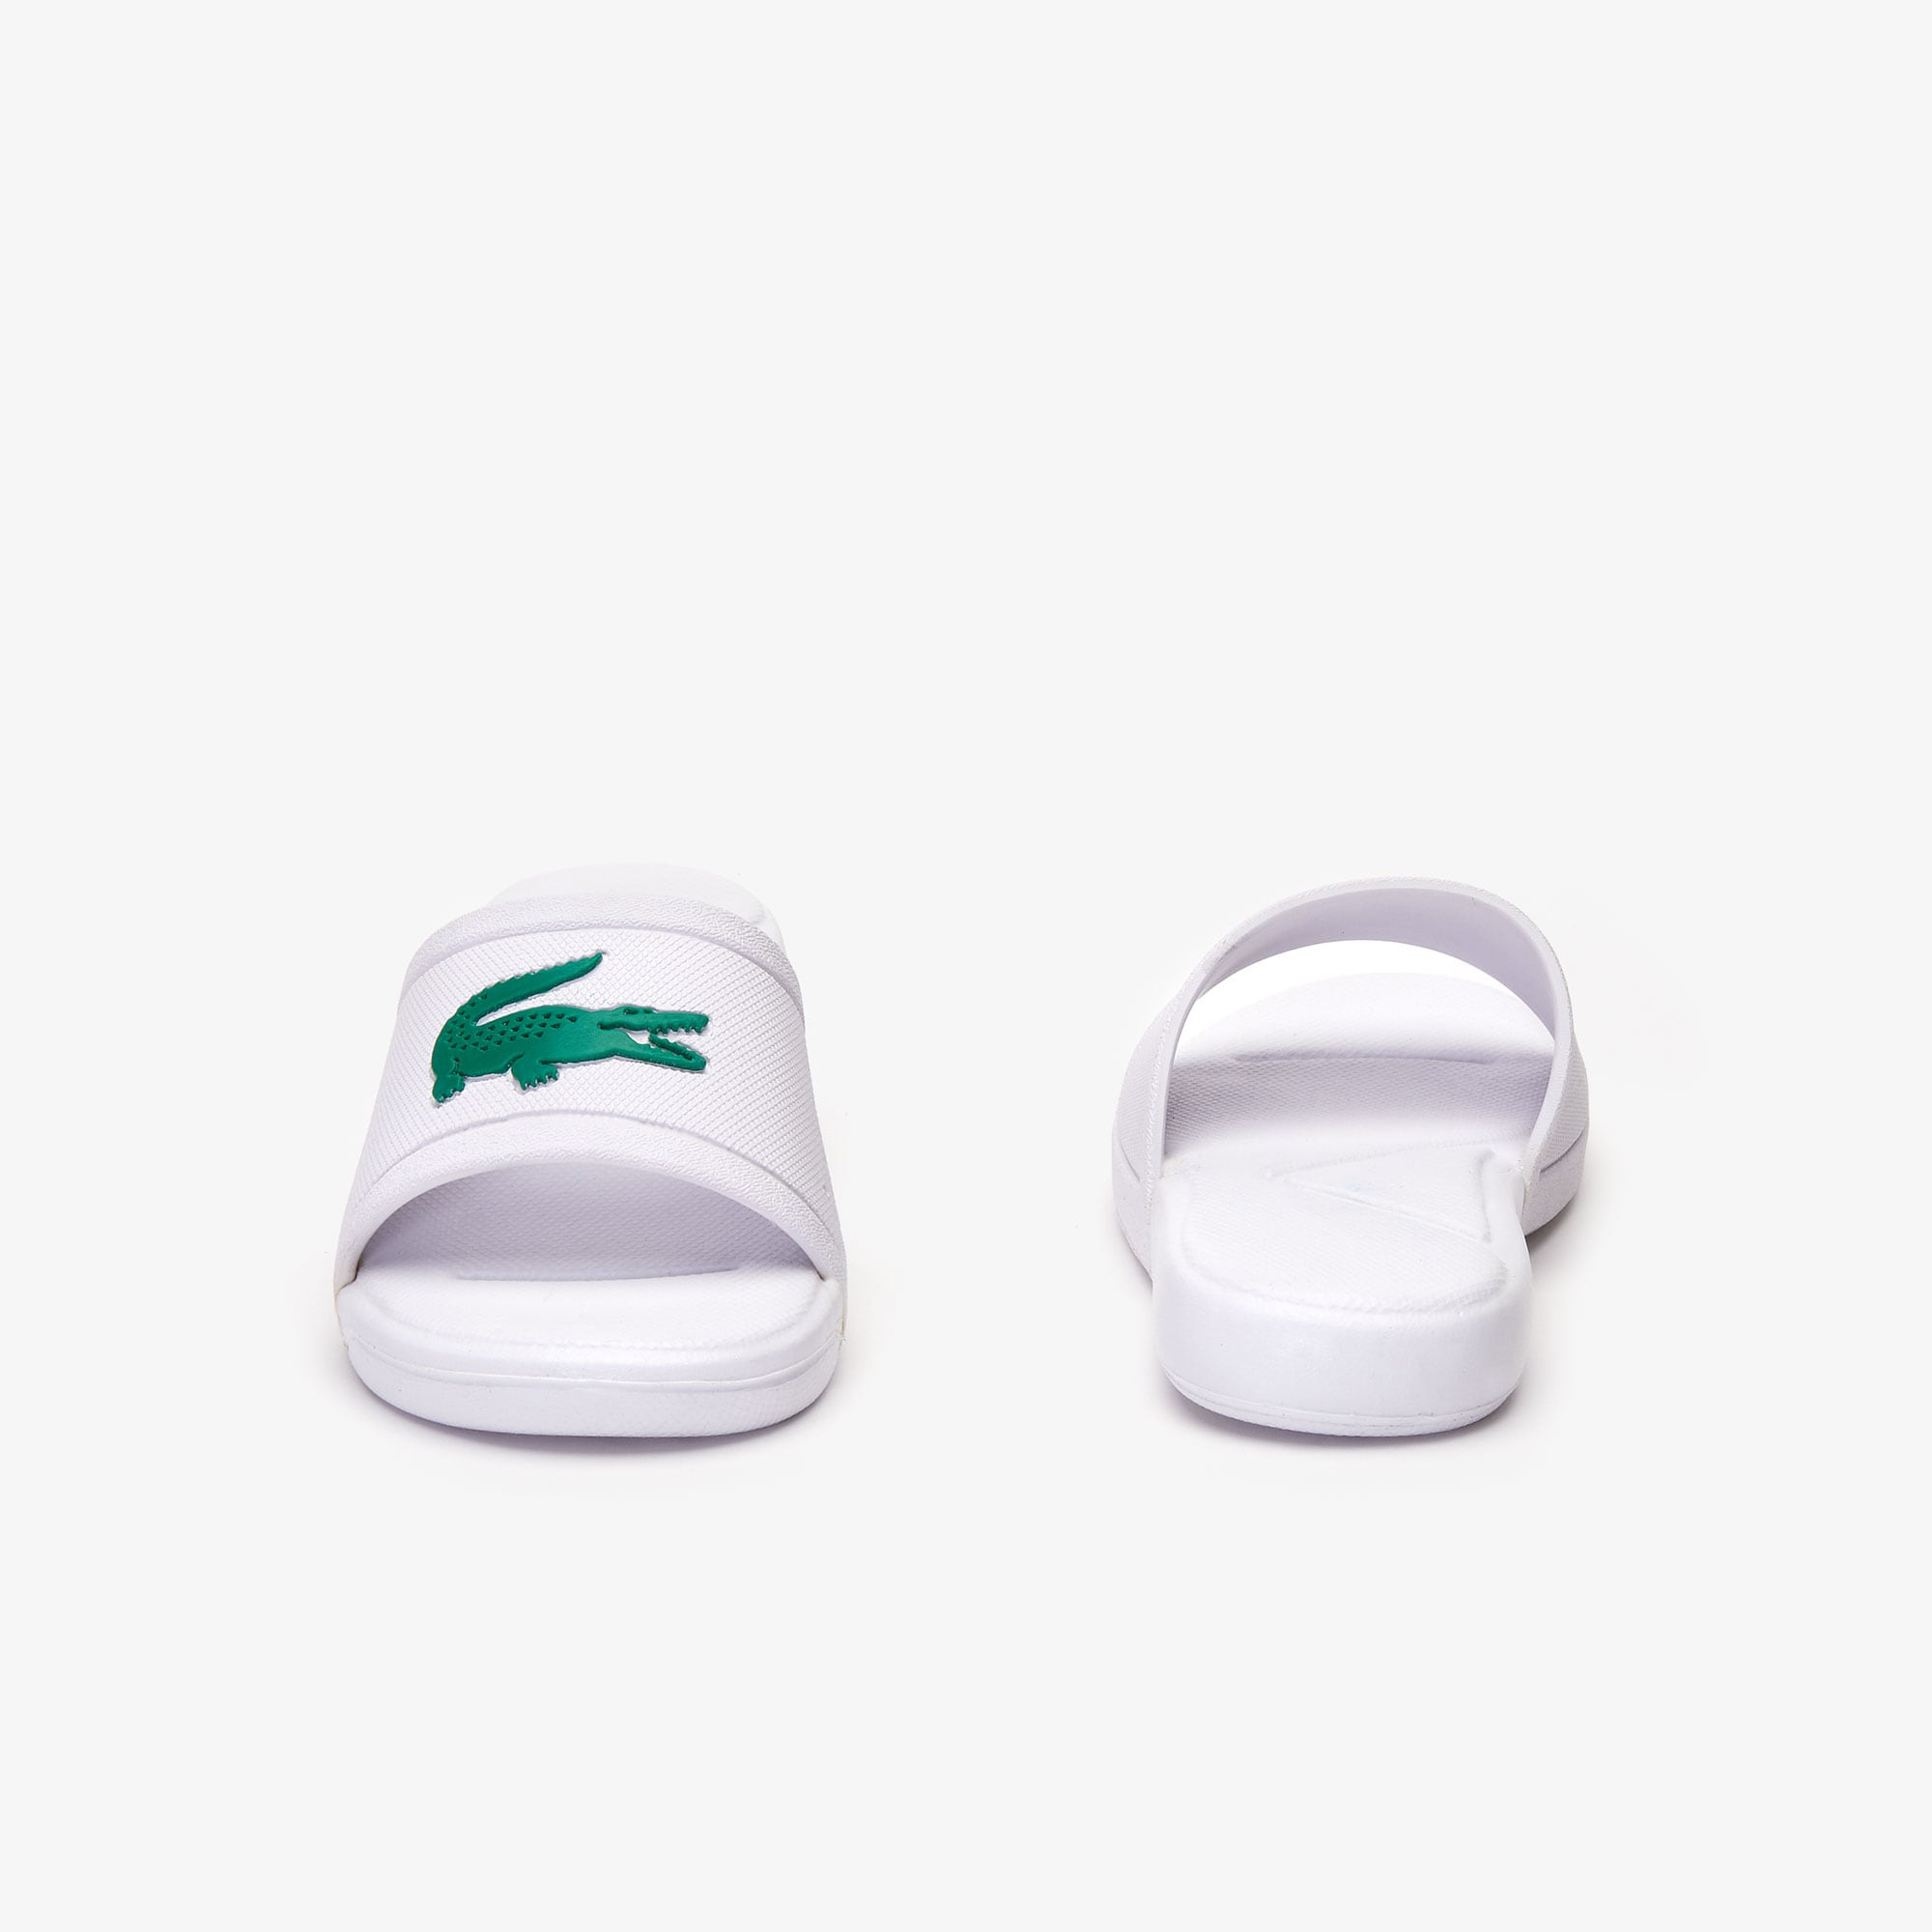 Children's L.30 Slides with Oversized Croc